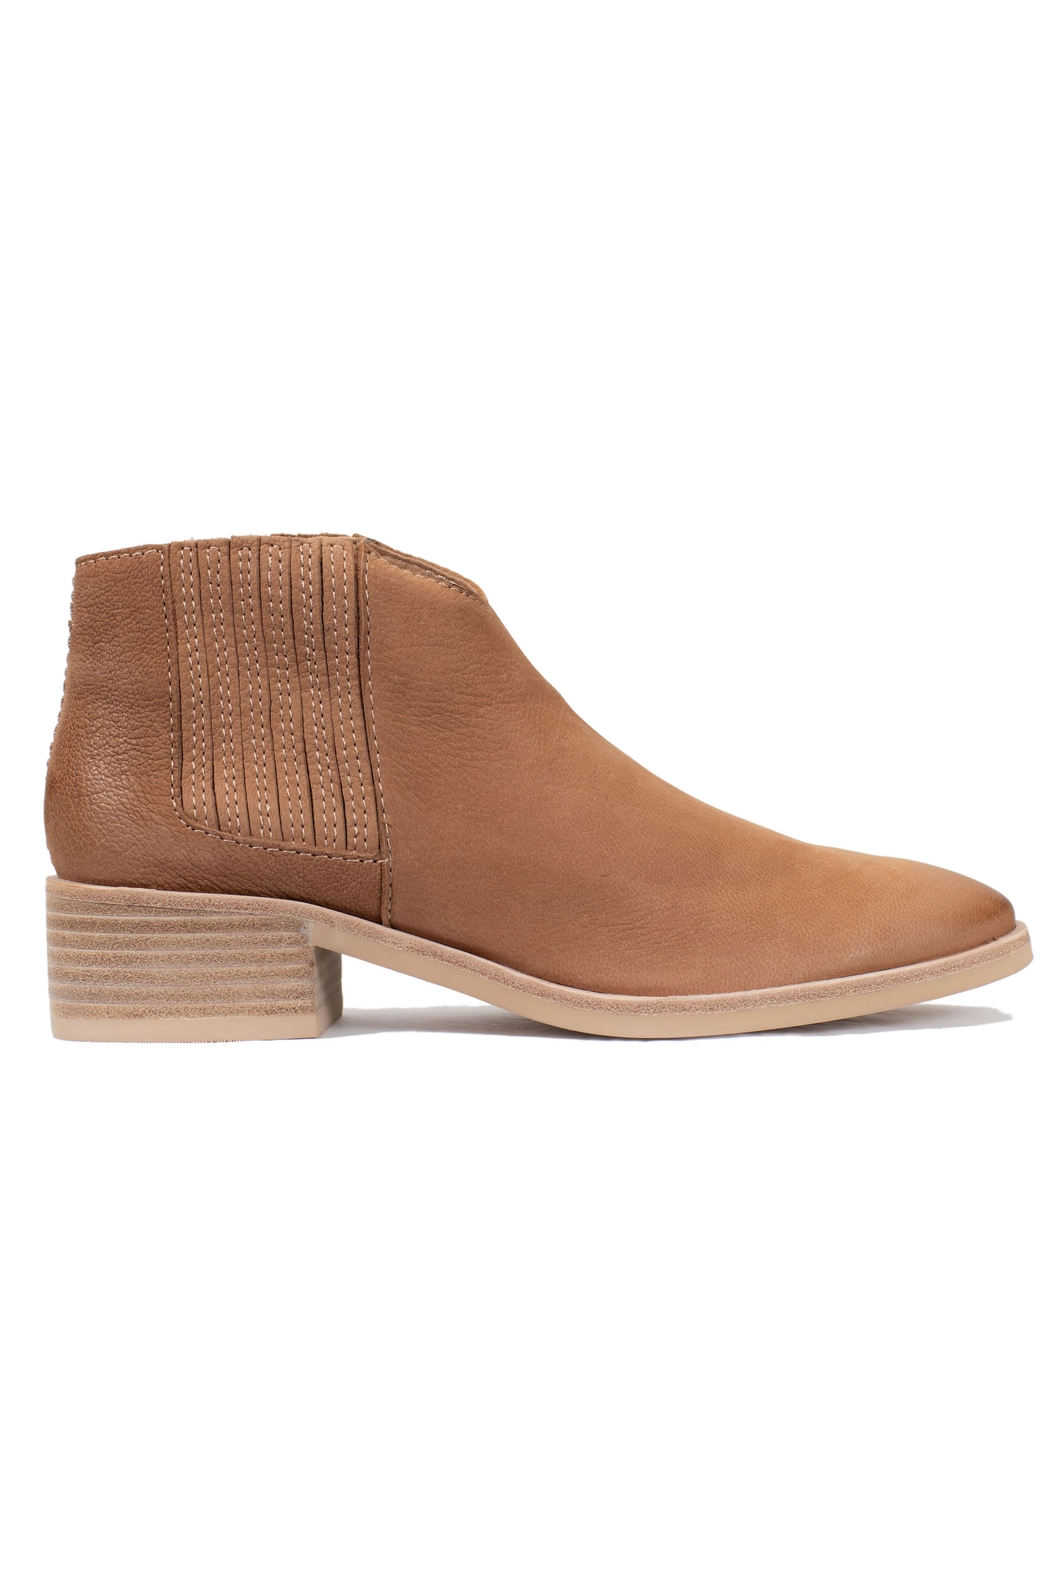 Dolce Vita Towne Booties - Front Full Image